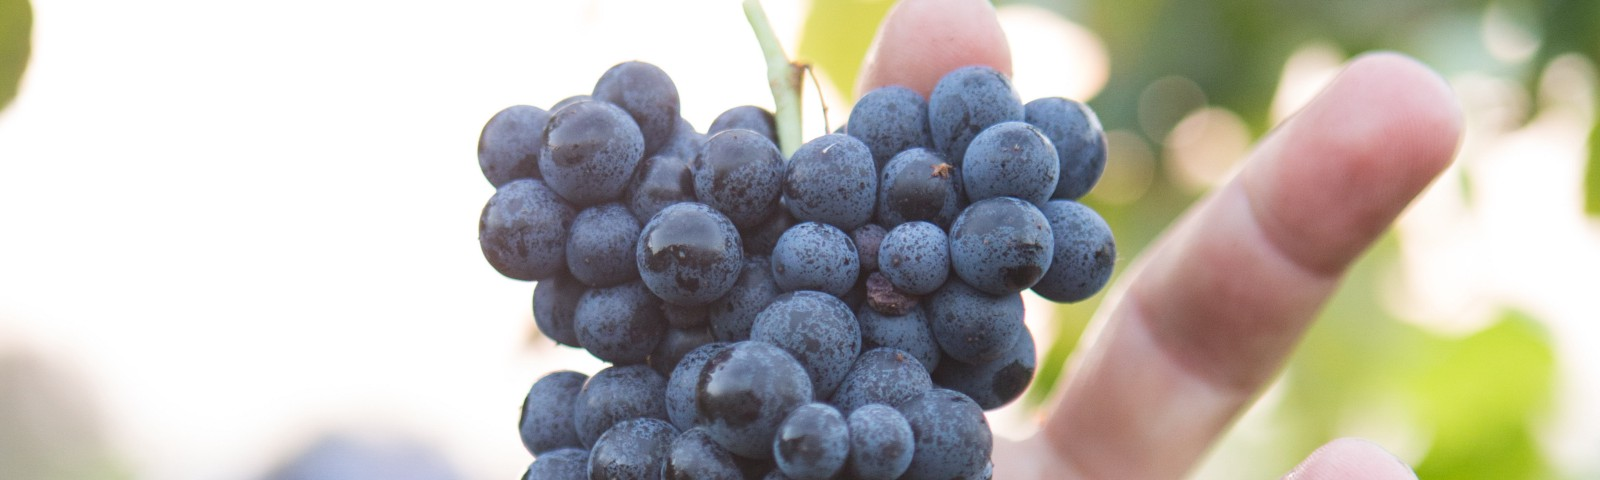 Man reaching for a ripe cluster of grapes.